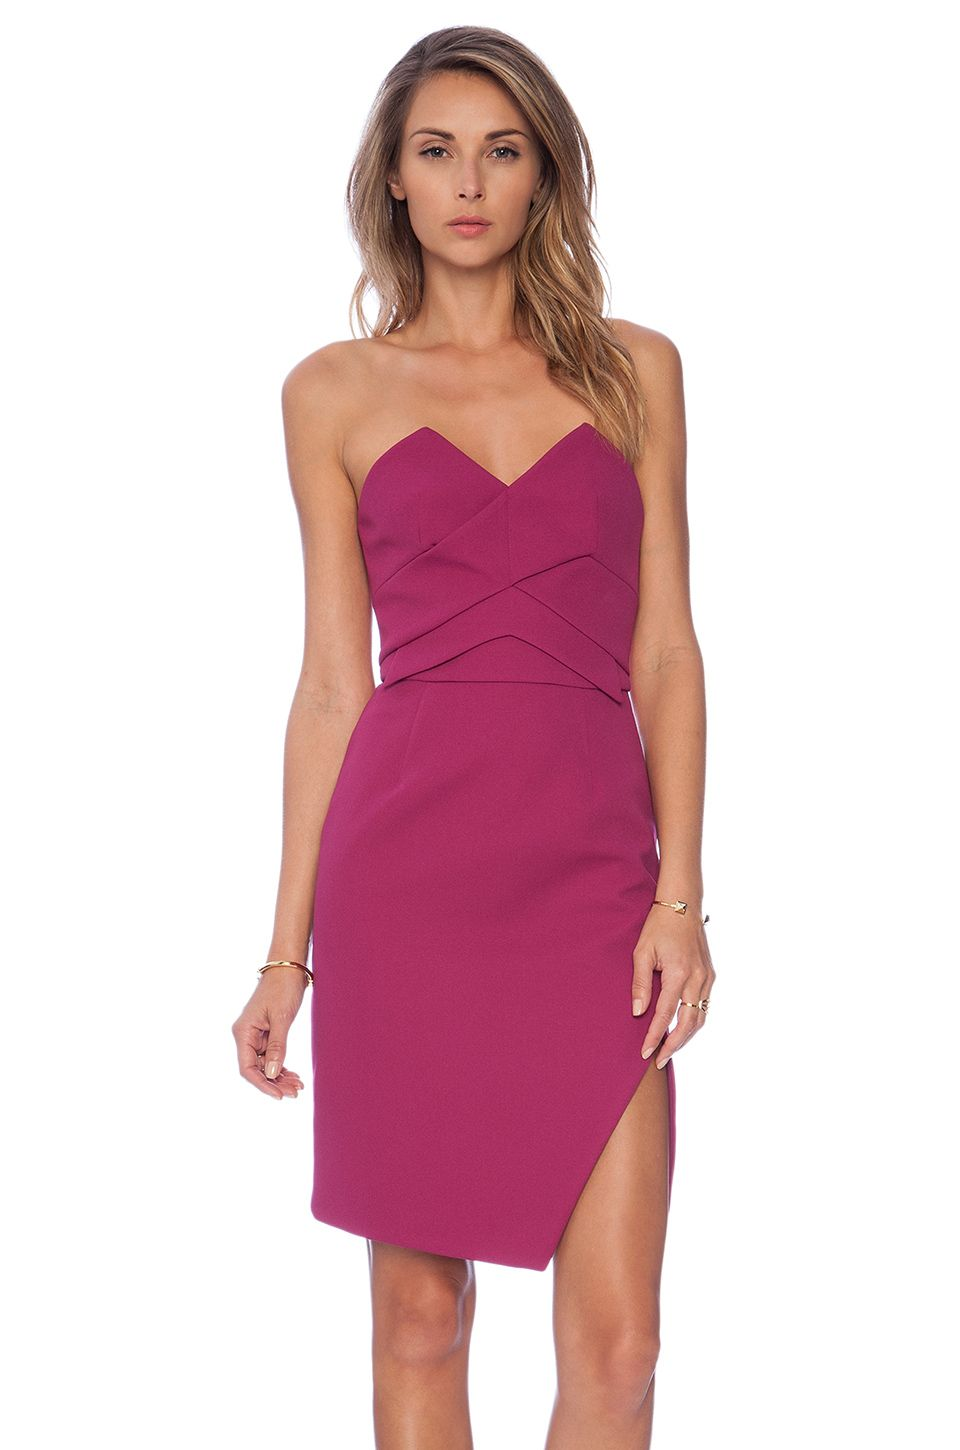 keepsake Holding Back Dress in Boysenberry | Bridesmaid dresses ...